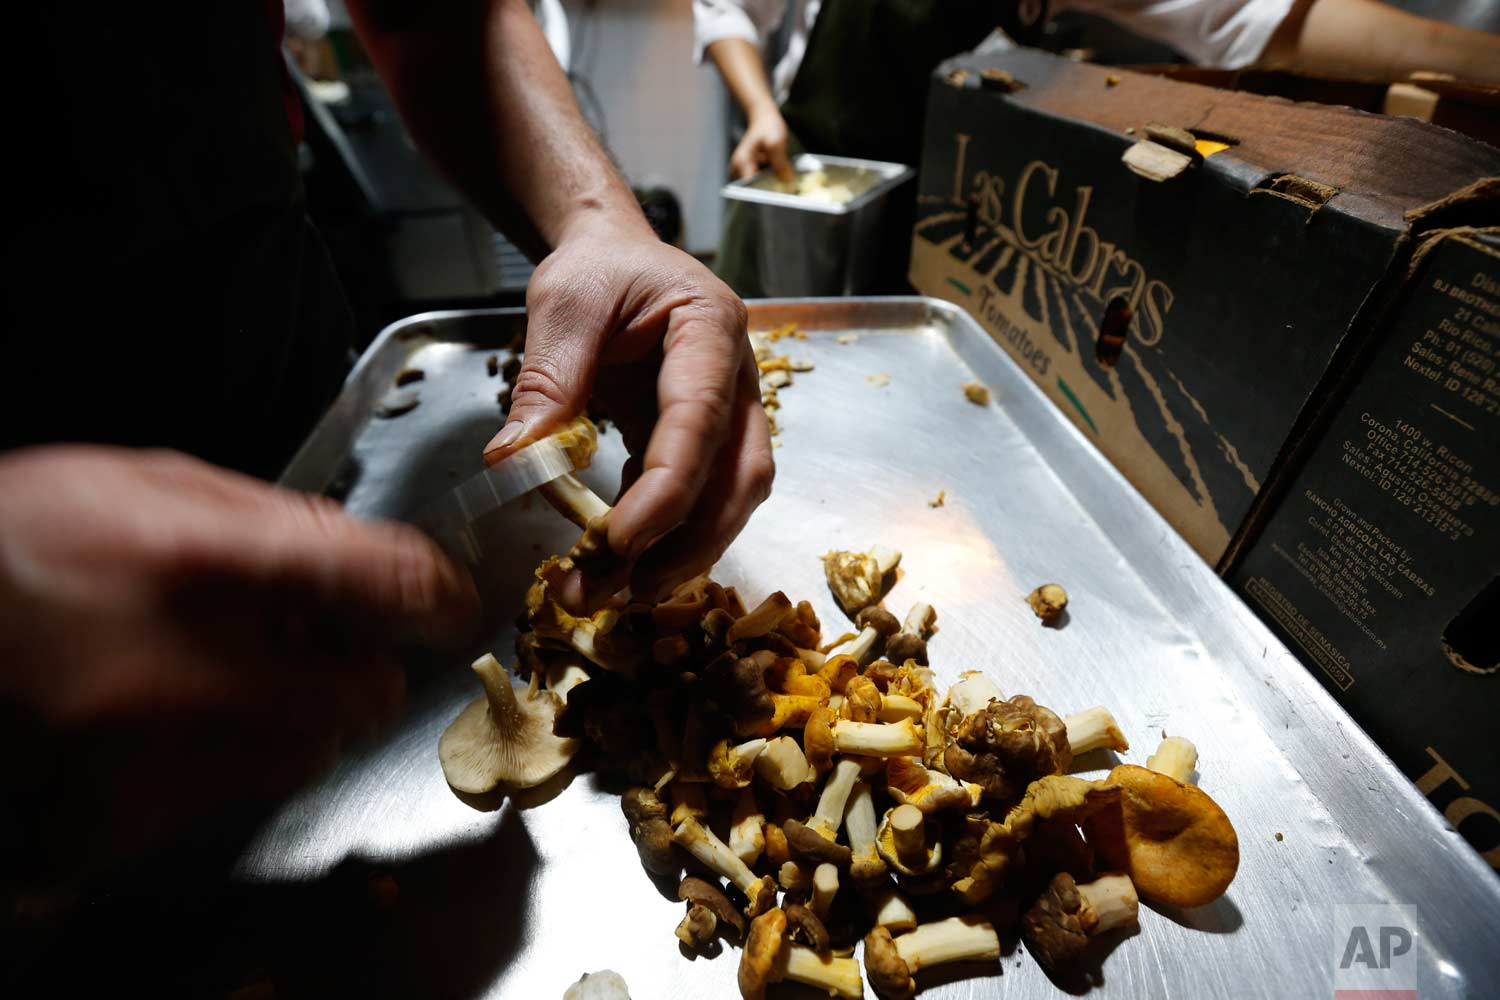 In this July 13, 2017 photo, chef Eduardo Garcia, founder of Maximo Bistrot and former migrant worker in the U.S., cuts mushrooms at his restaurant in Mexico City. (AP Photo/Marco Ugarte)